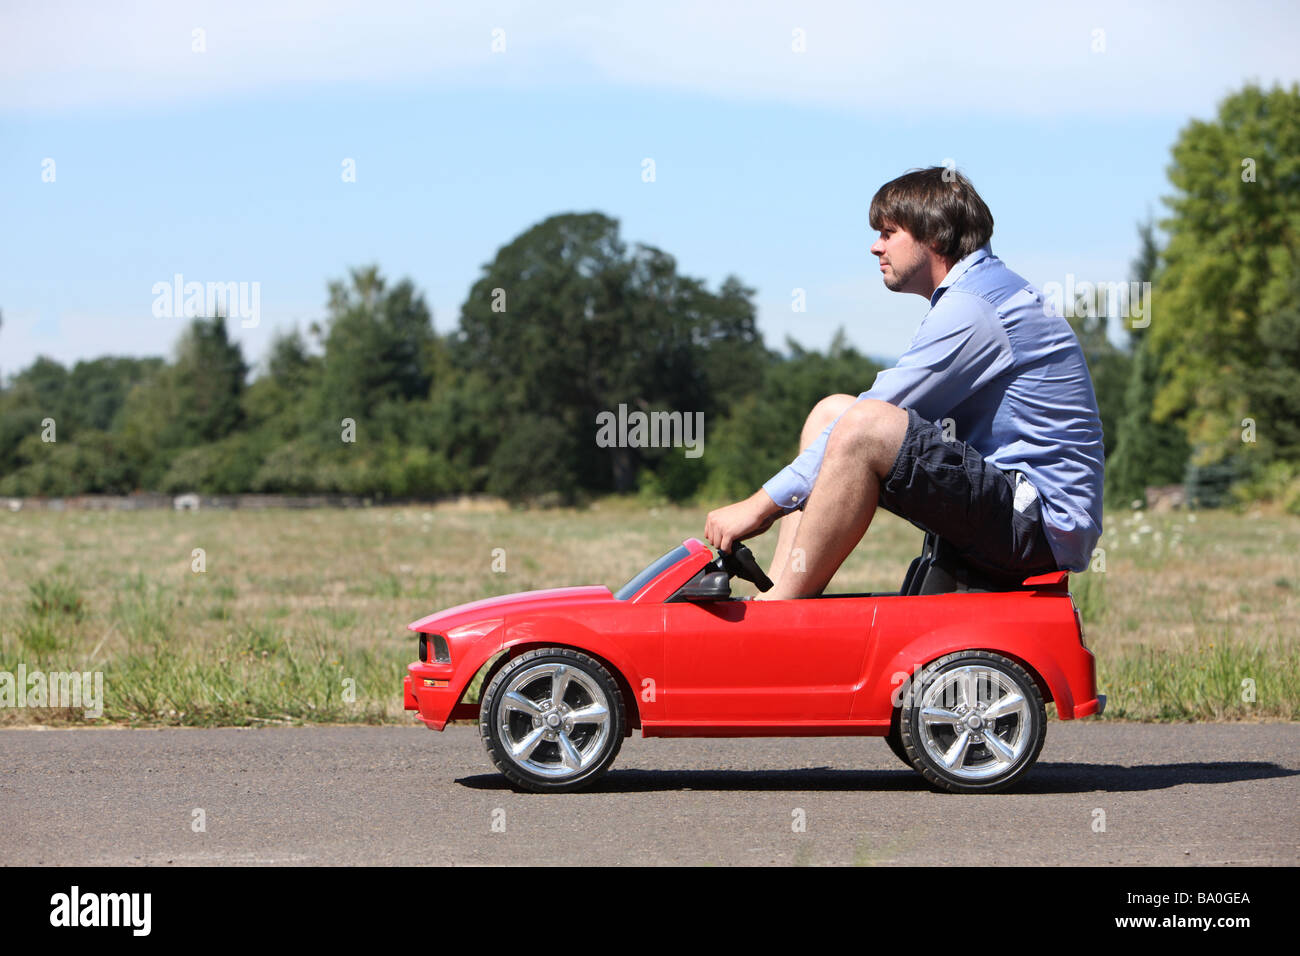 Man Driving A Small Car Stock Photo 23369874 Alamy